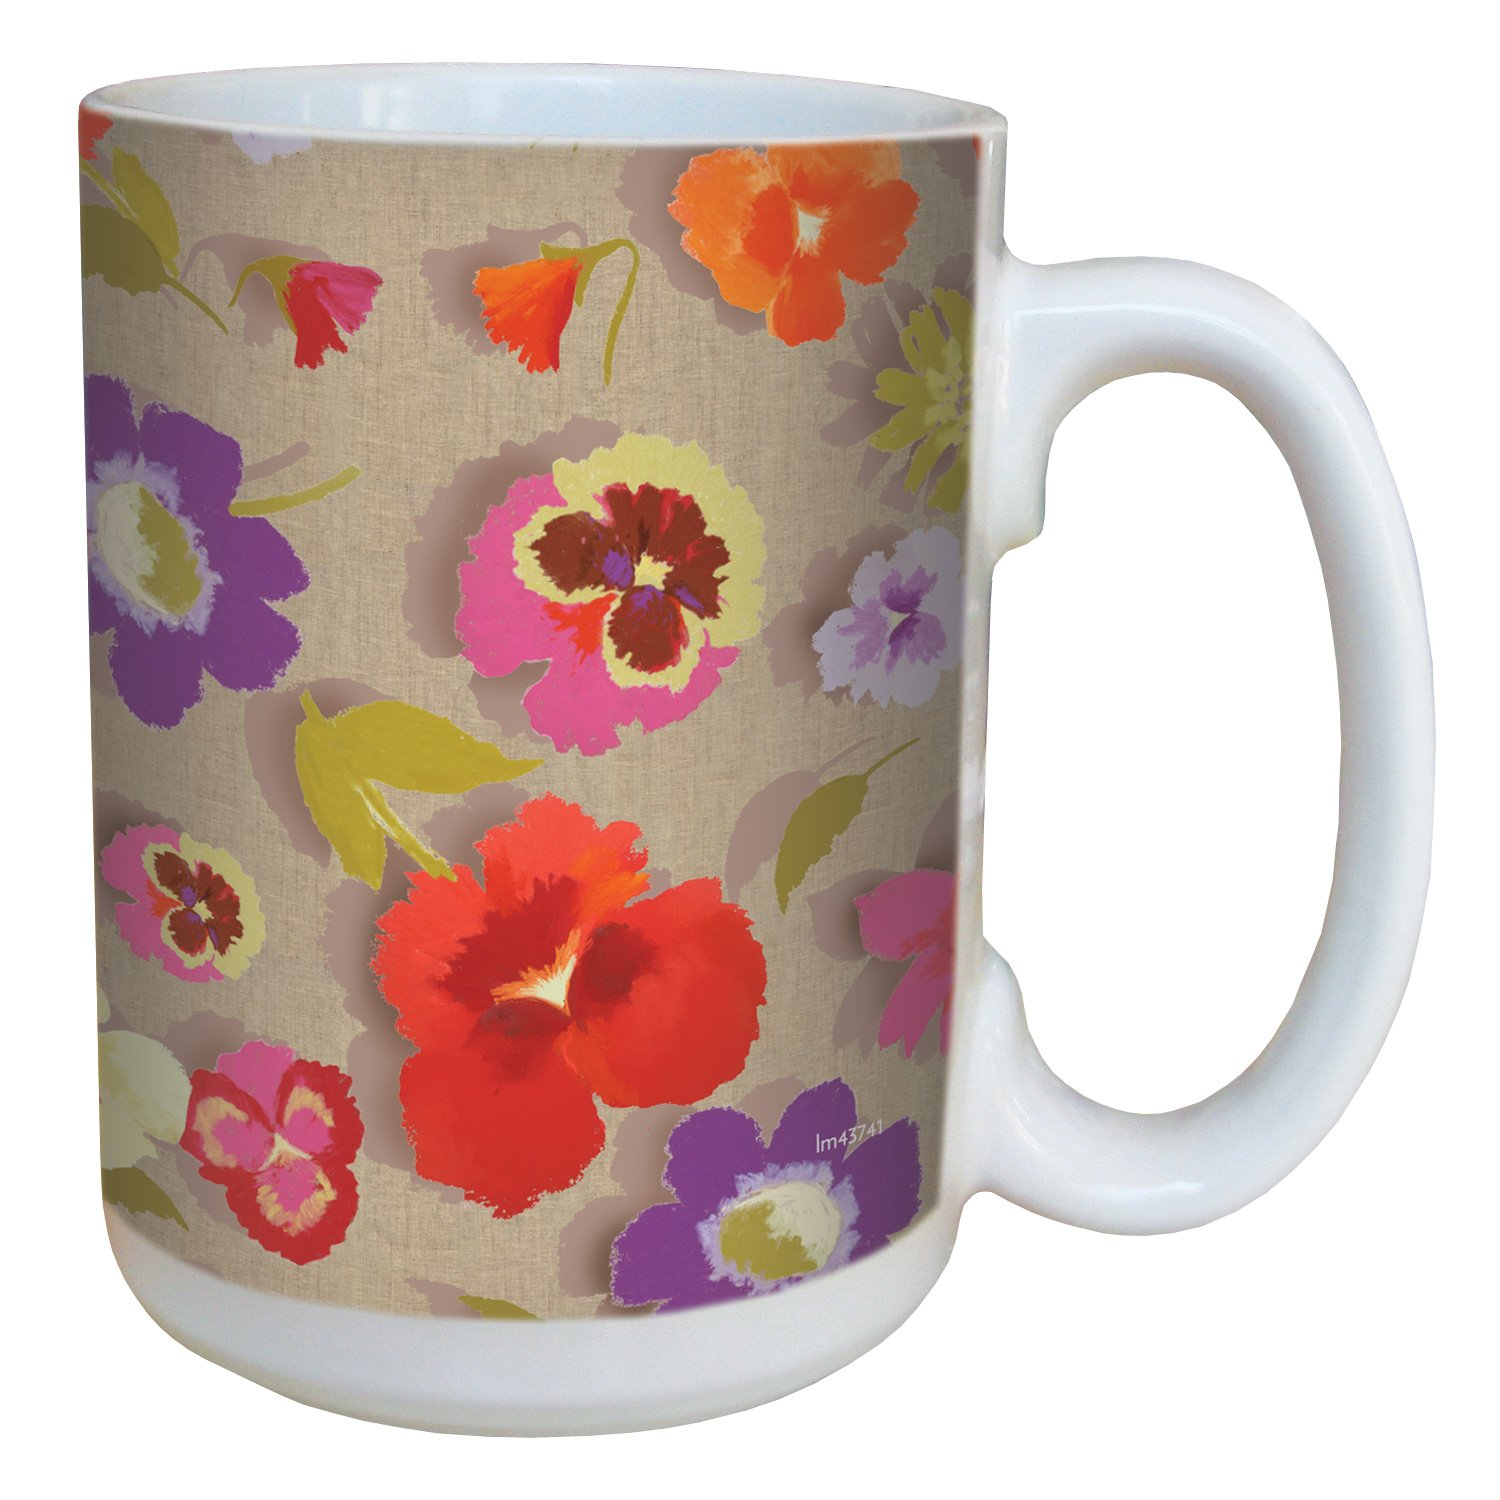 Tree-Free Greetings lm43741 Secret Garden Floral on Linen by Nel Whatmore Ceramic Mug, 15-Ounce